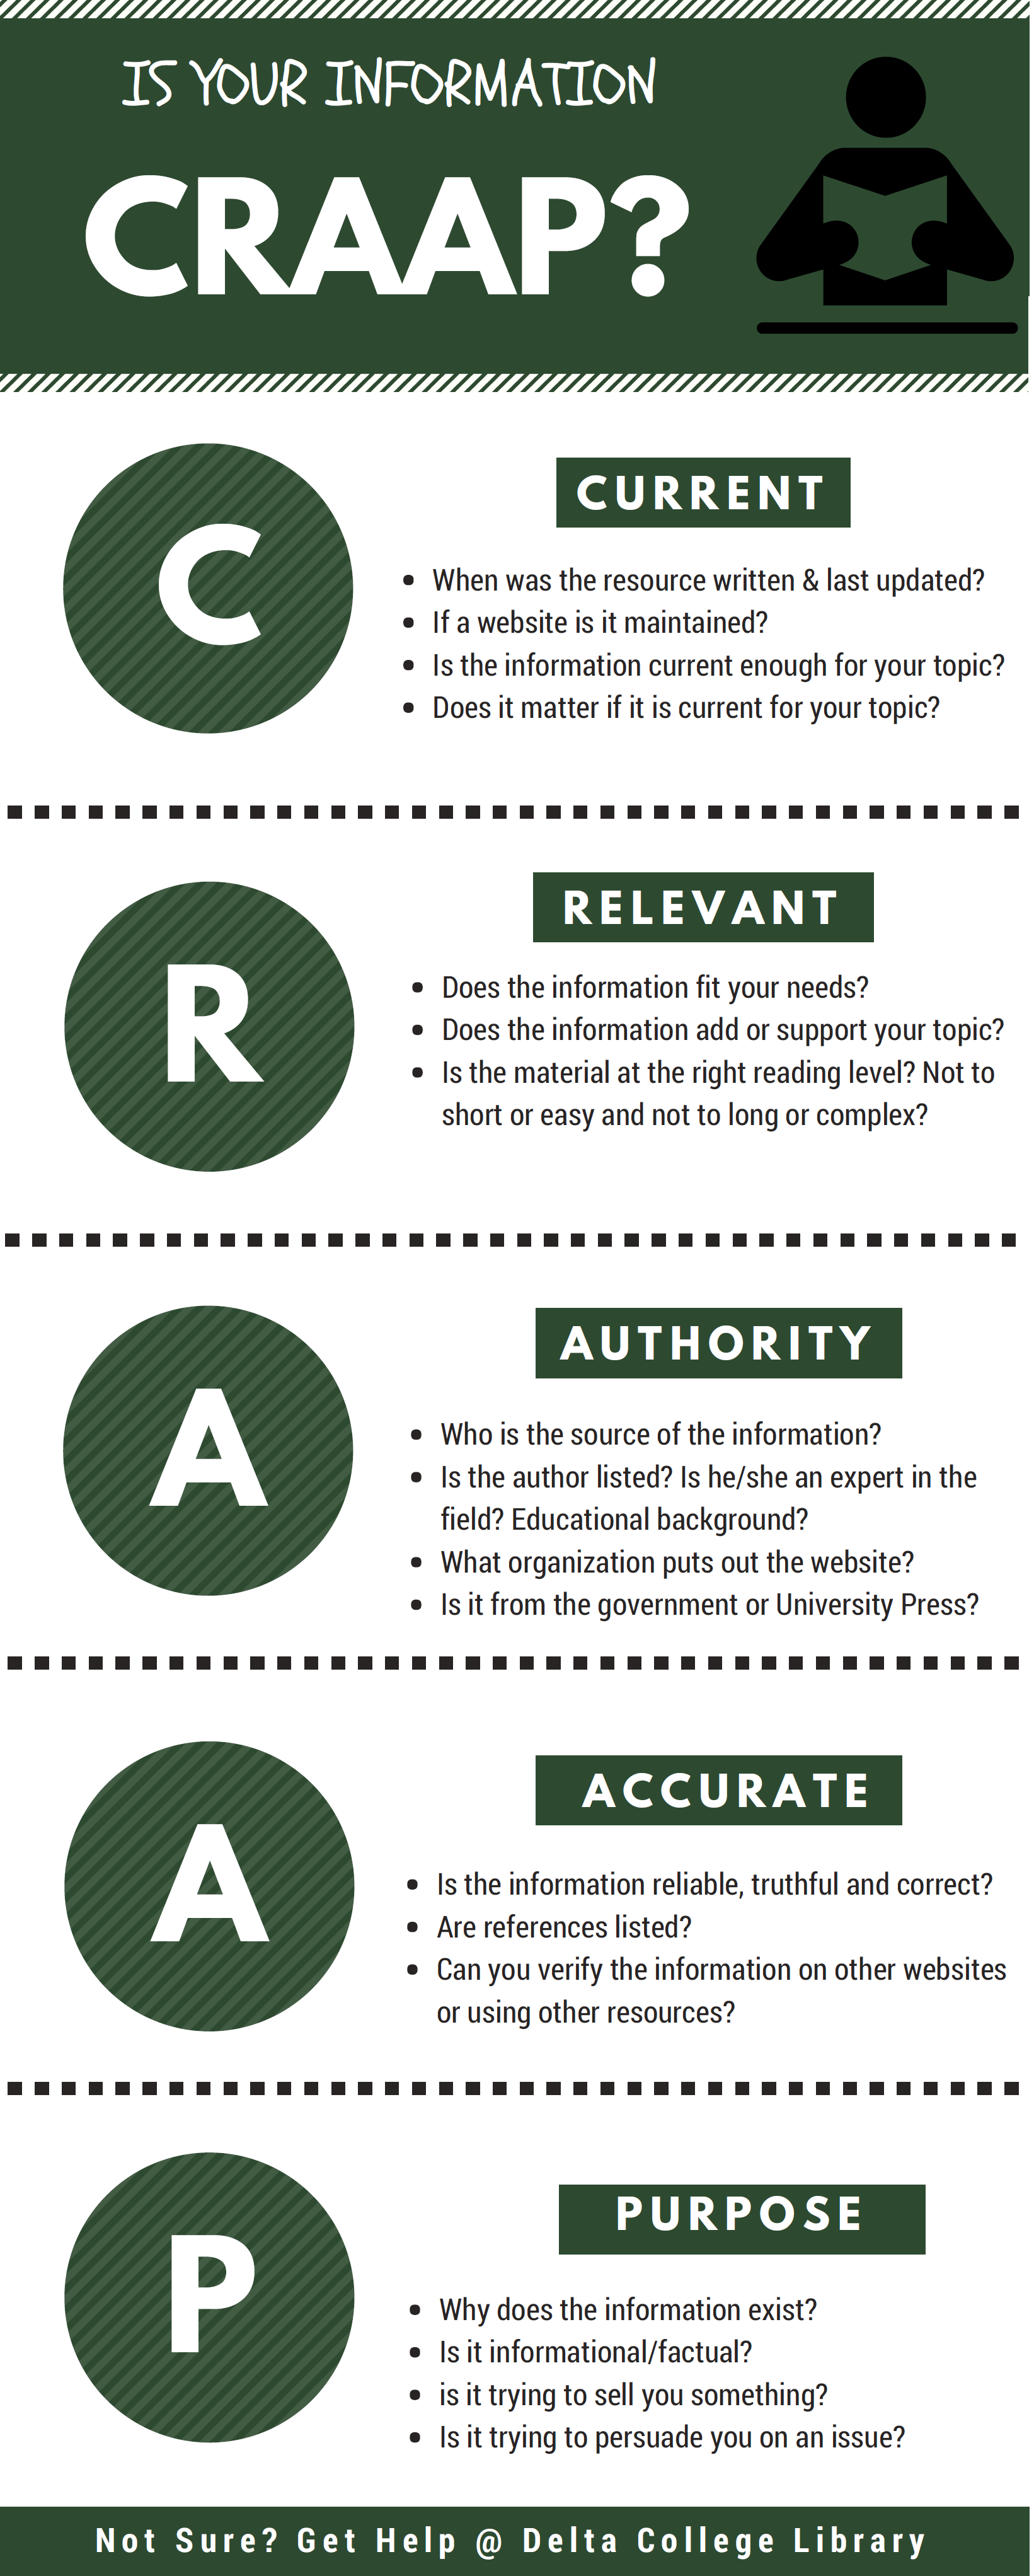 CRAAP Infographic describes looking at Currency, Relevency, Authority, Accuracy and Purpose in critically evaluating information resources